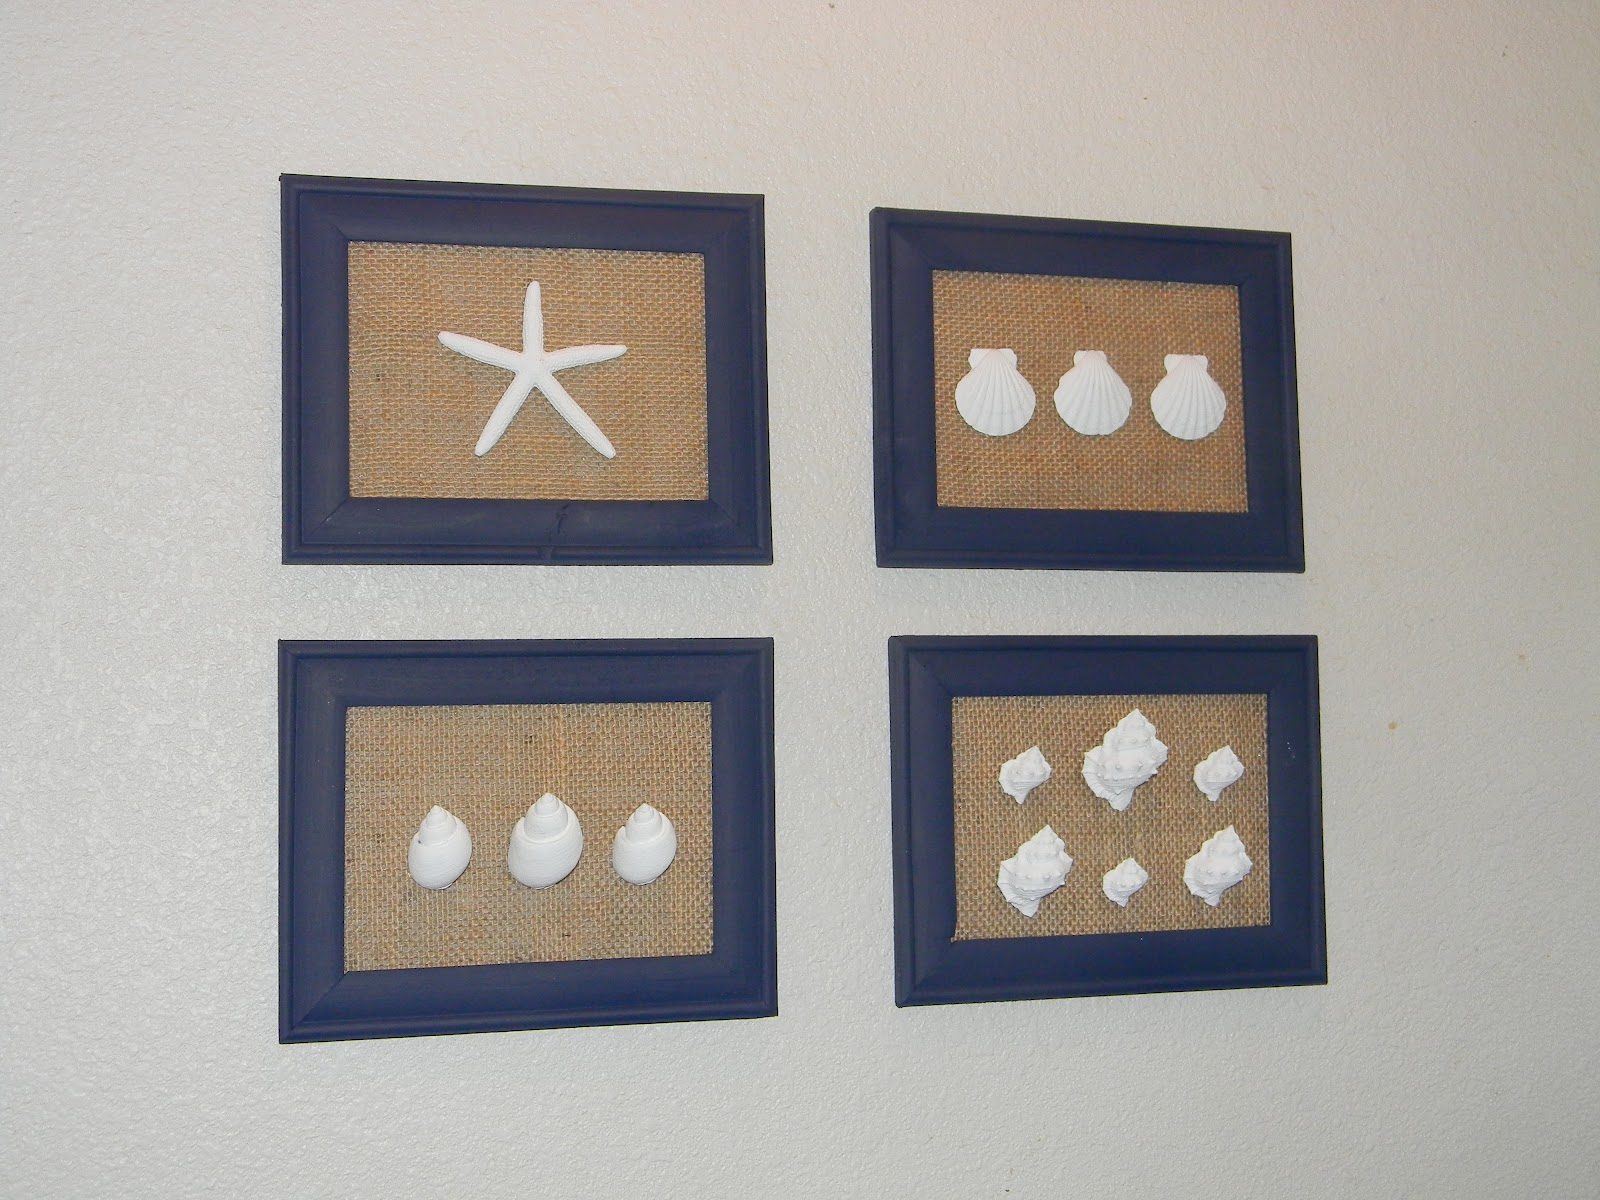 Brandy s Creations  DIY Sea Shell and Burlap Wall Art 92f73b5b2994